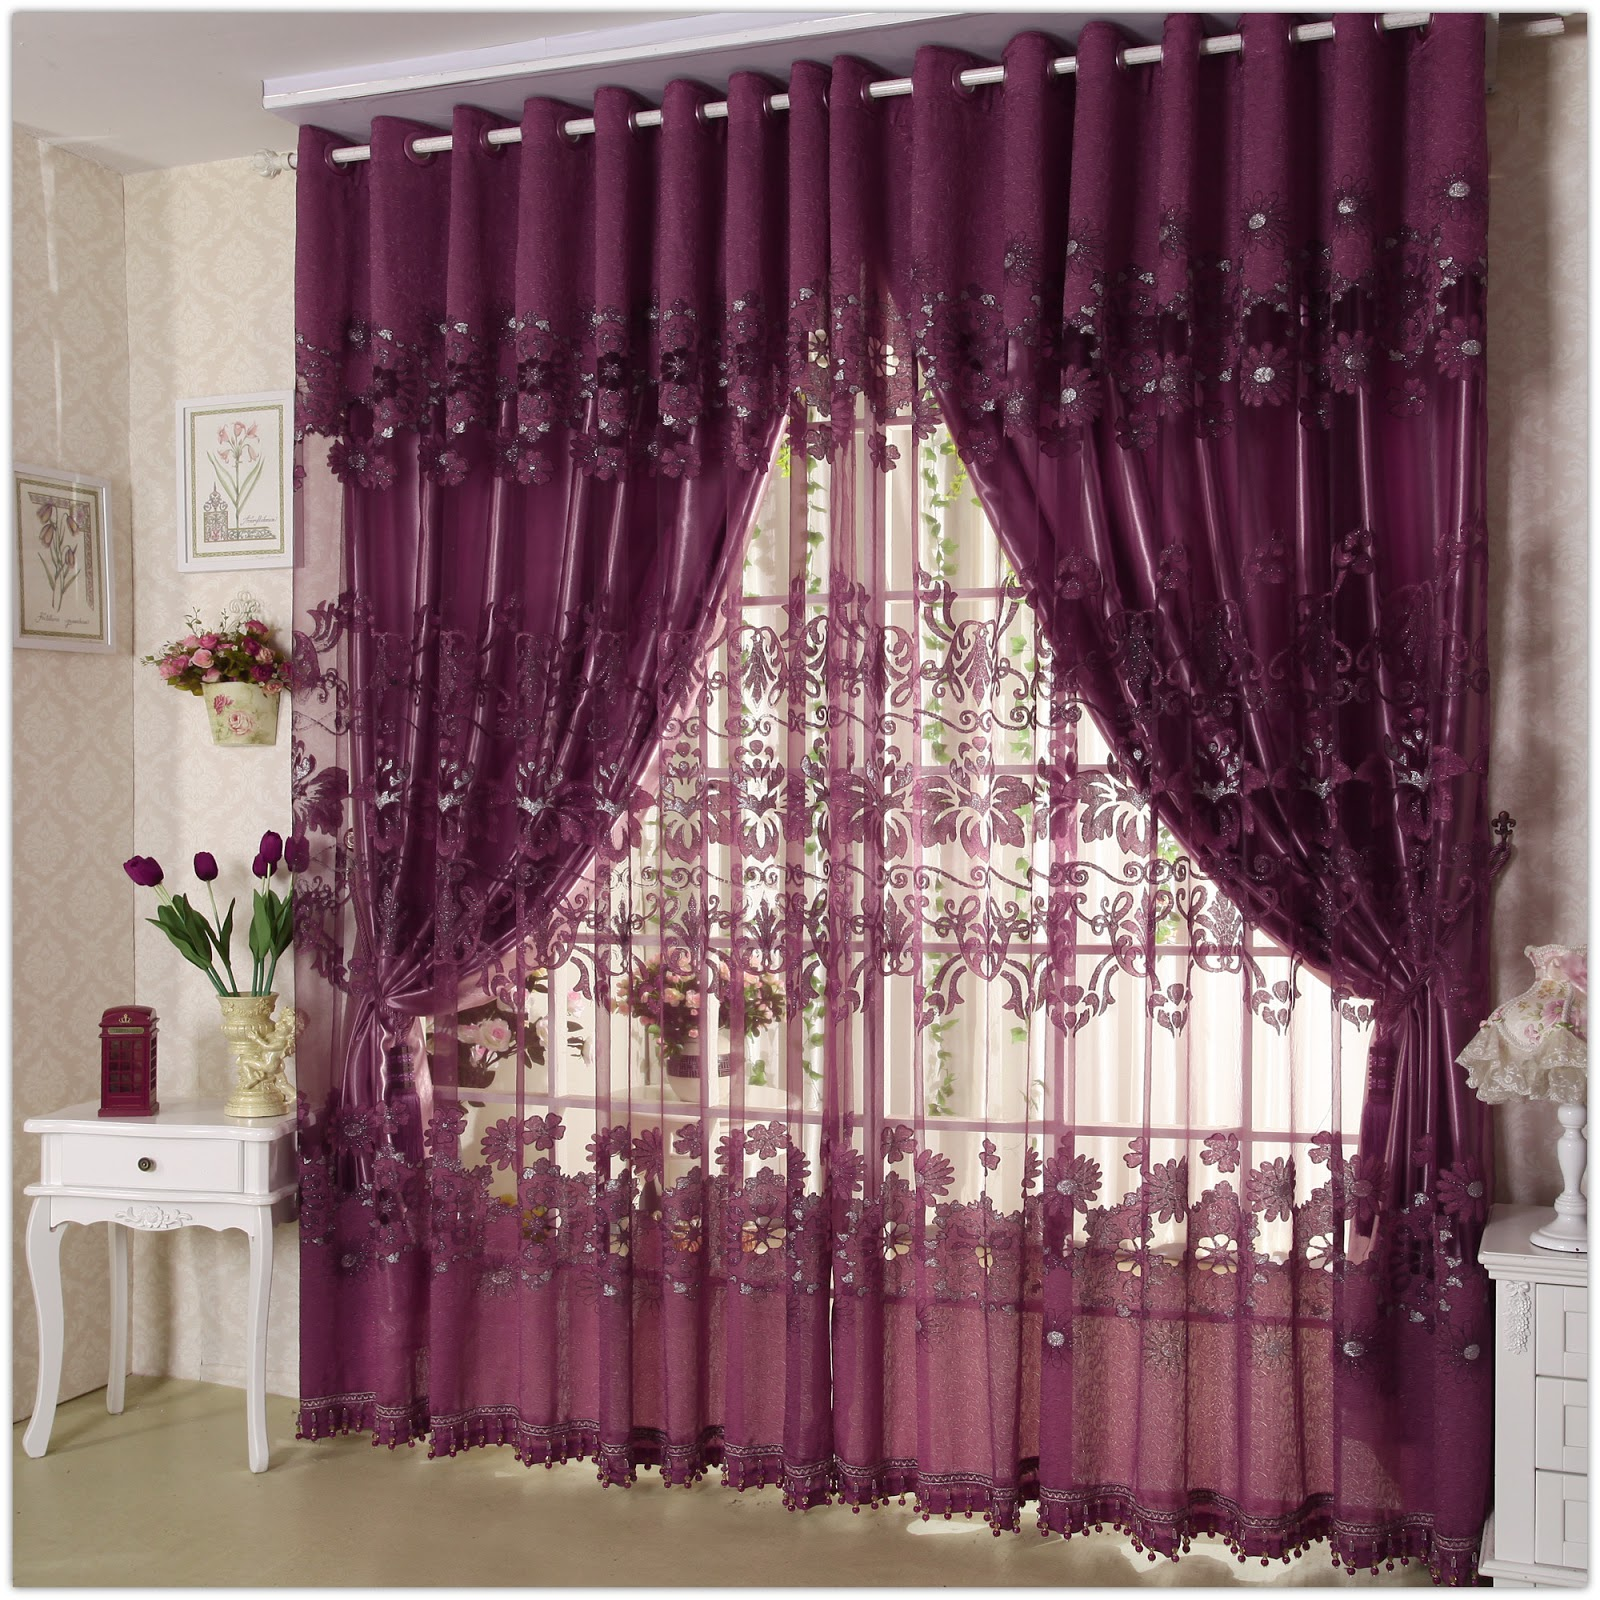 Football Curtains Ford Transit Curtainsider Forest Curtain Tracks Formal Dining Rooms